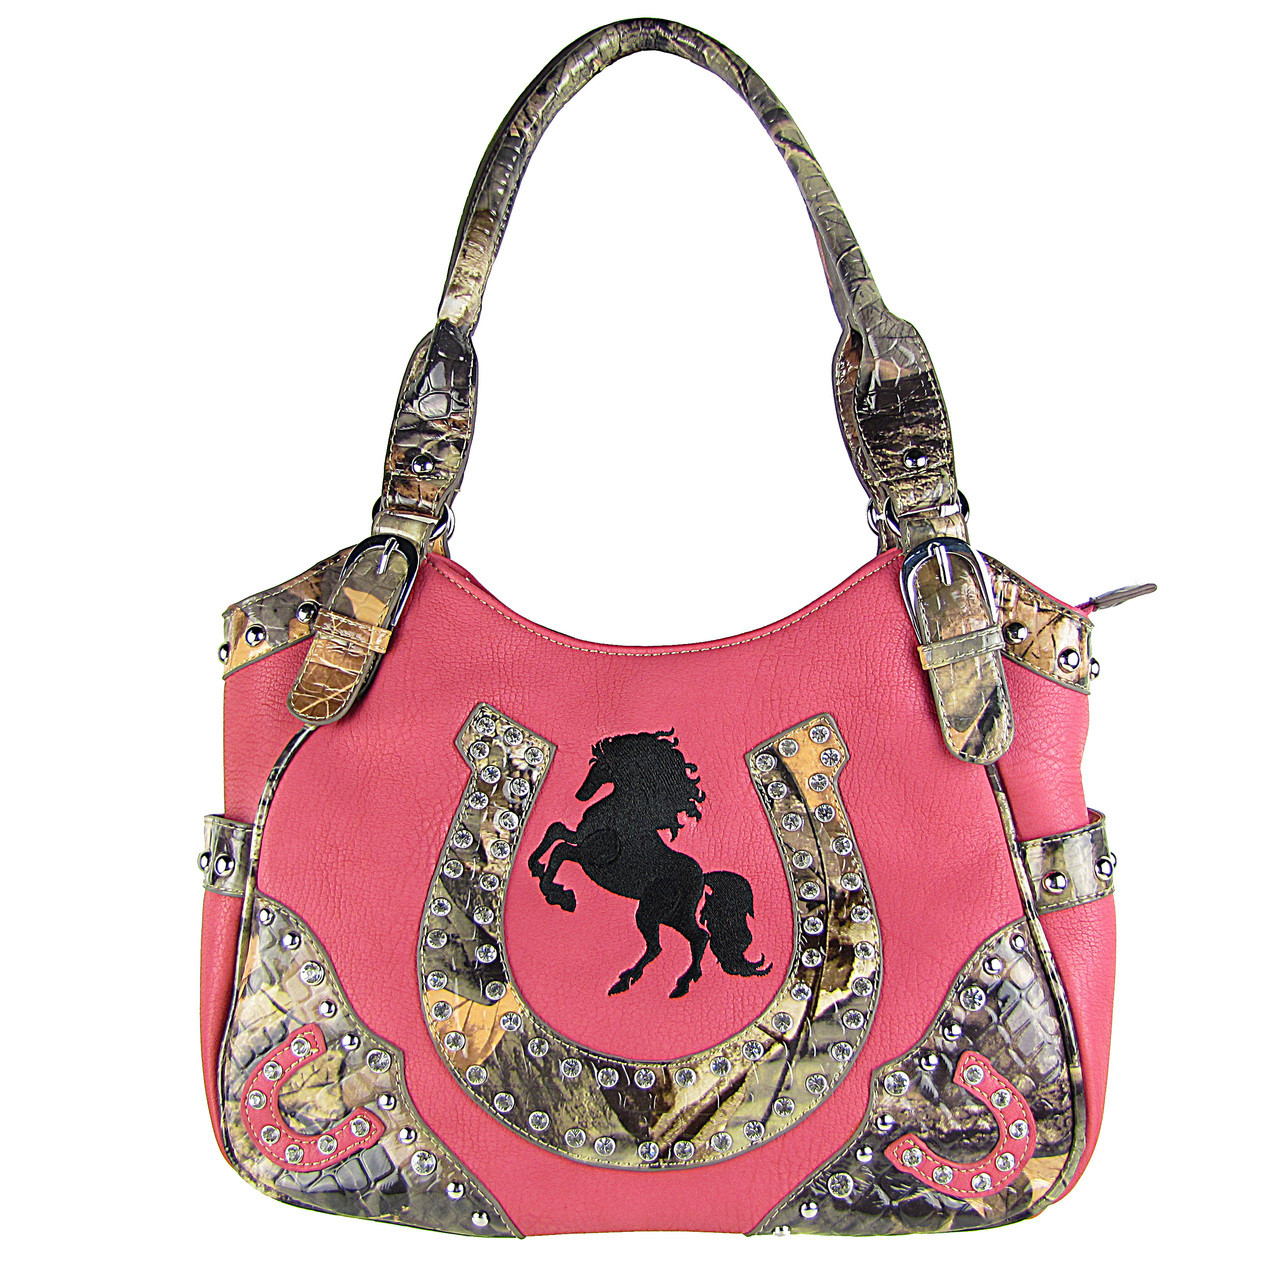 HOT PINK WESTERN MOSSY CAMO RHINESTONE STUDDED HORSESHOE LOOK SHOULDER HANDBAG HB1-HH392-20HPK